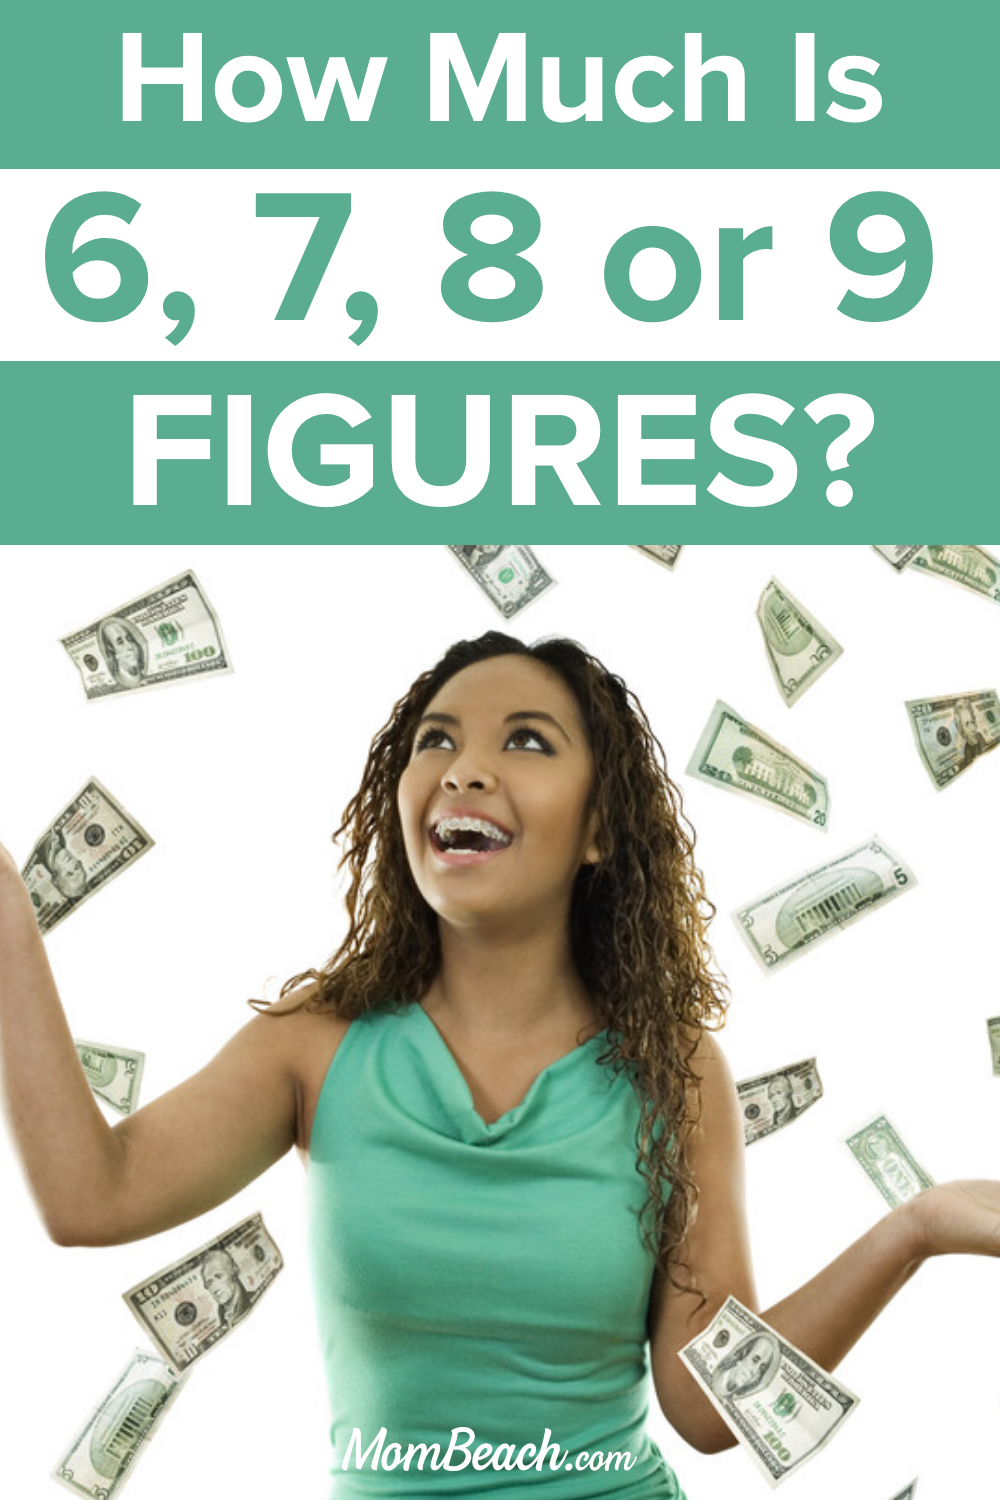 Do you know how much 6, 7, 8 or 9 figures is? Let us help you find out today with this handy guide. Never be confused again when someone says they are making six figures. How much is 6 figures? How much is 7 figures? How much is 8 figures? Let me tell you! #howmuchis6figures #howmuchis7figures #howmuchis8figures #howmuchis9figures #6figures #7figures #8figures #9figures